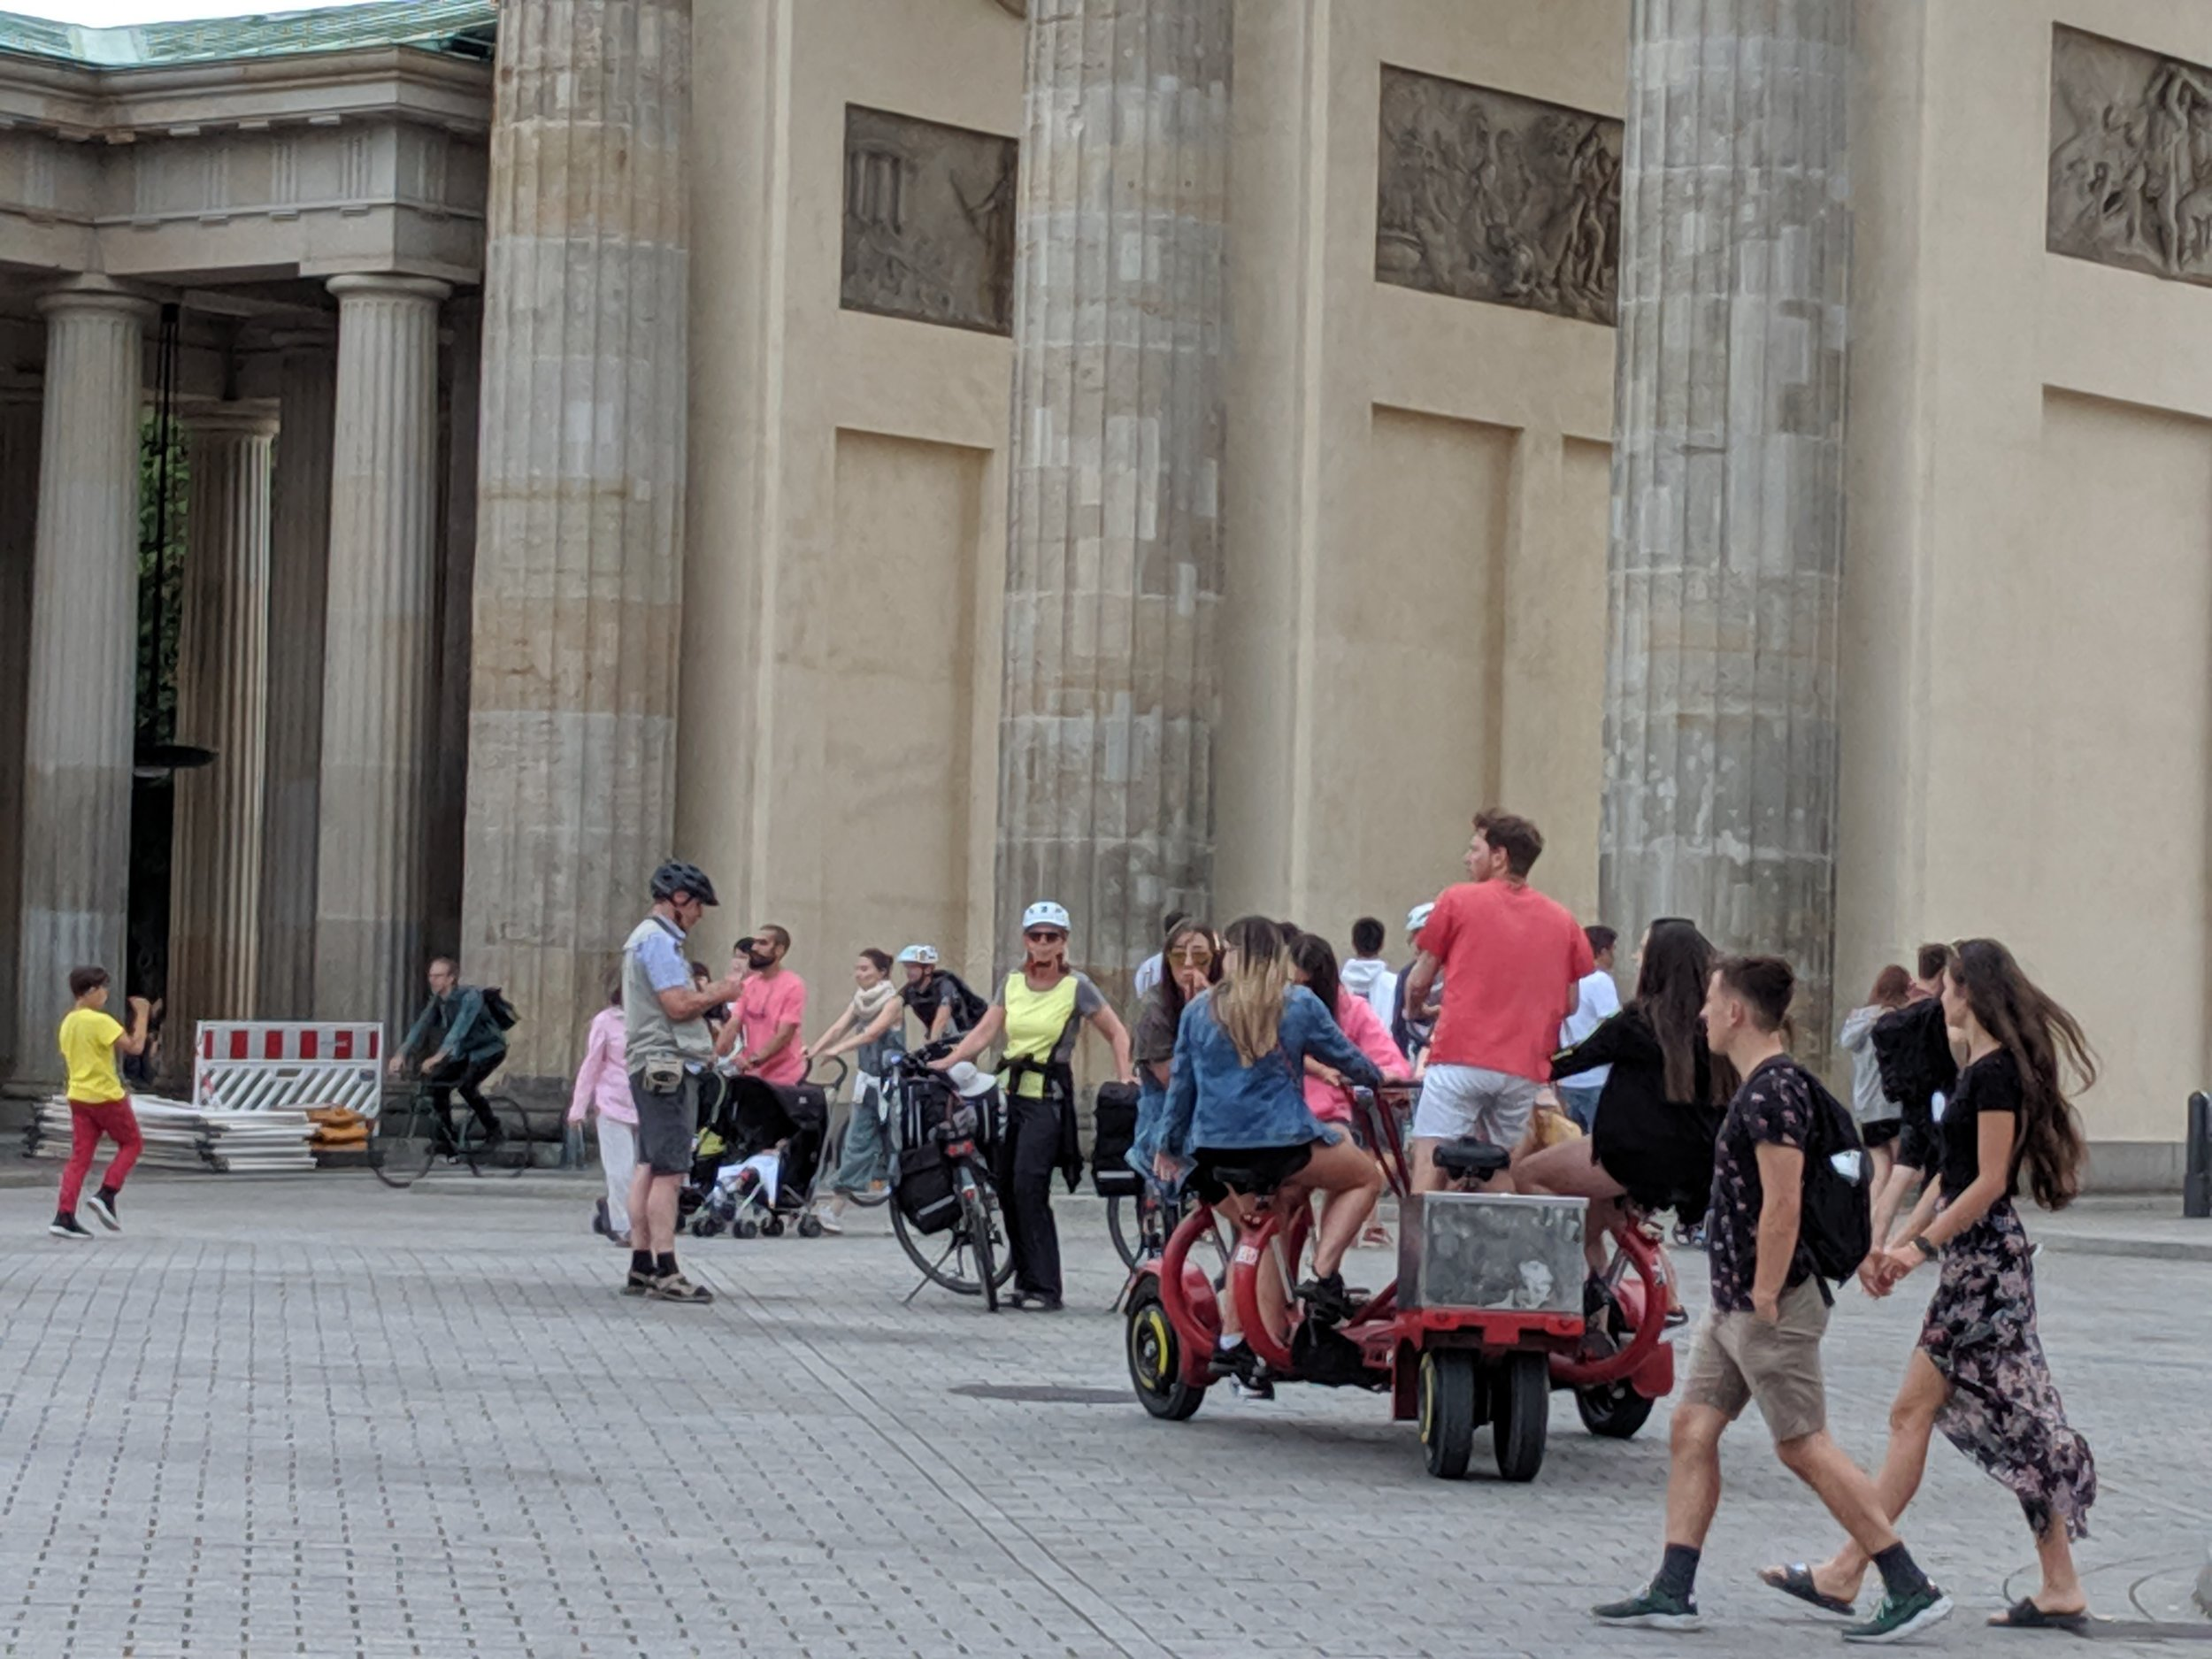 A spirit of freedom is felt throughout Berlin: here at the Brandenburg gate tourists have fun with all manner of transportation. Later in the day a band set up a stage for a free public performance. The city is both security conscious and freedom loving.